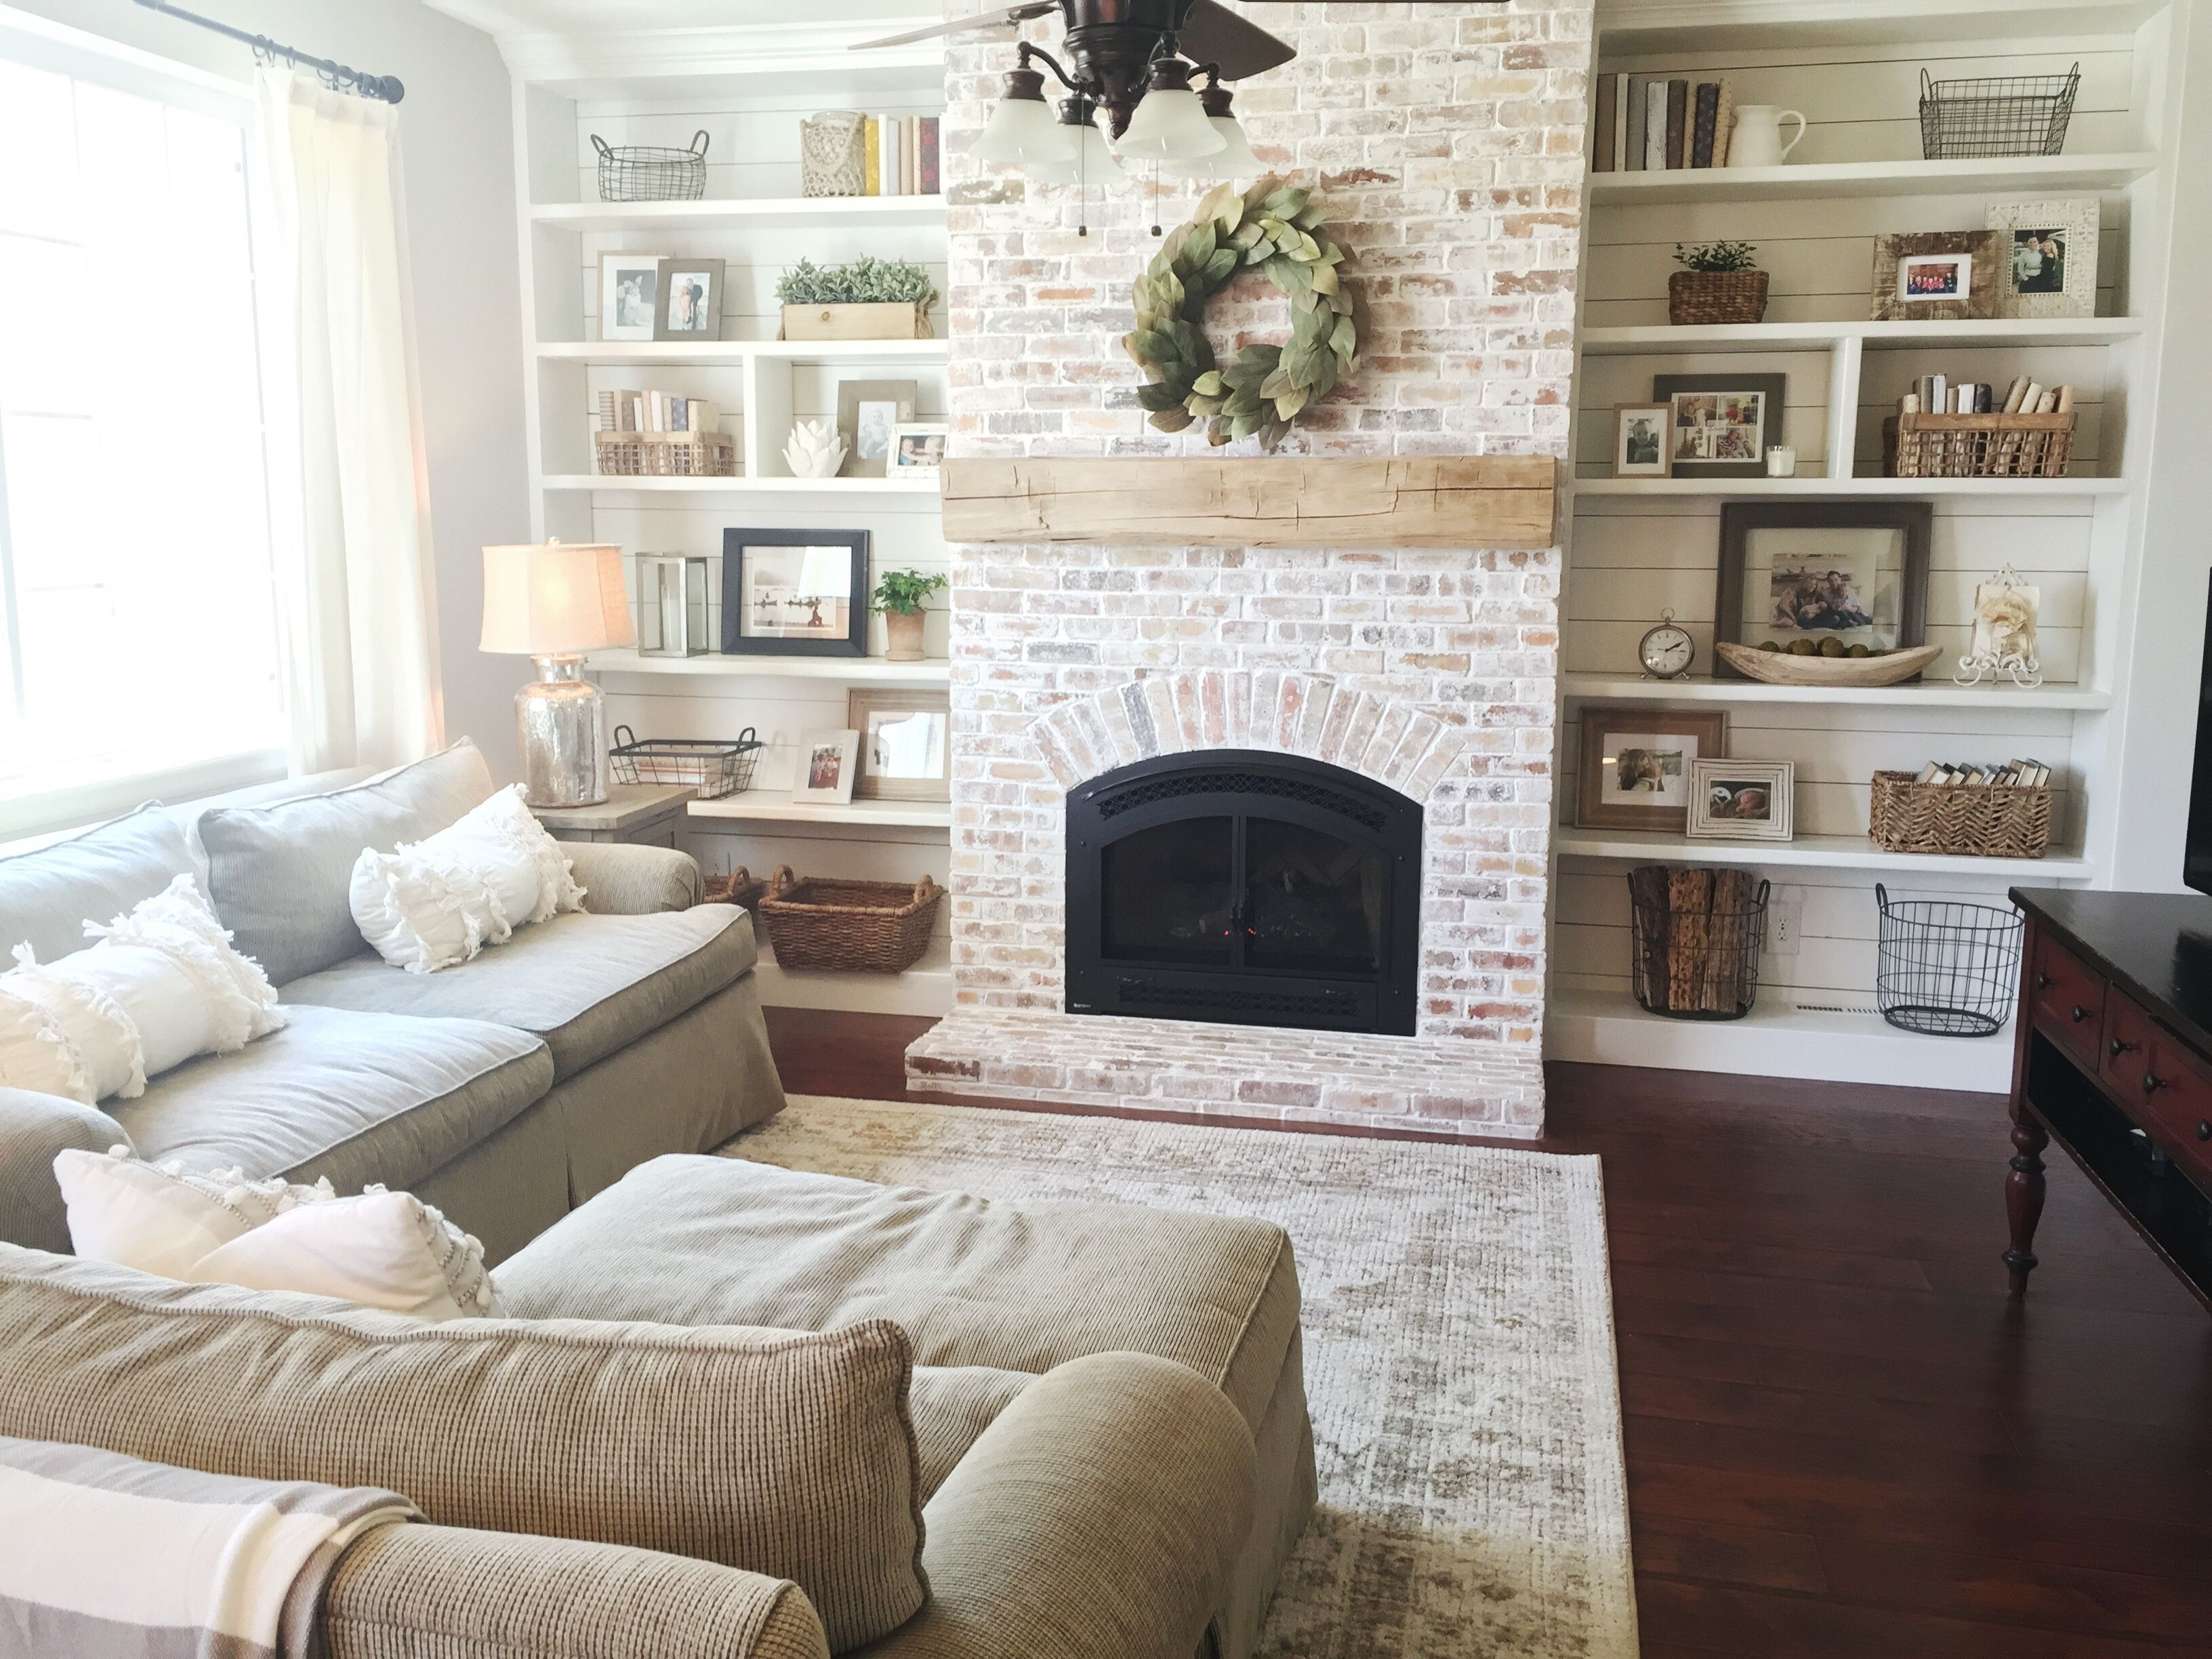 Built ins shiplap whitewash brick fireplace bookshelf styling from